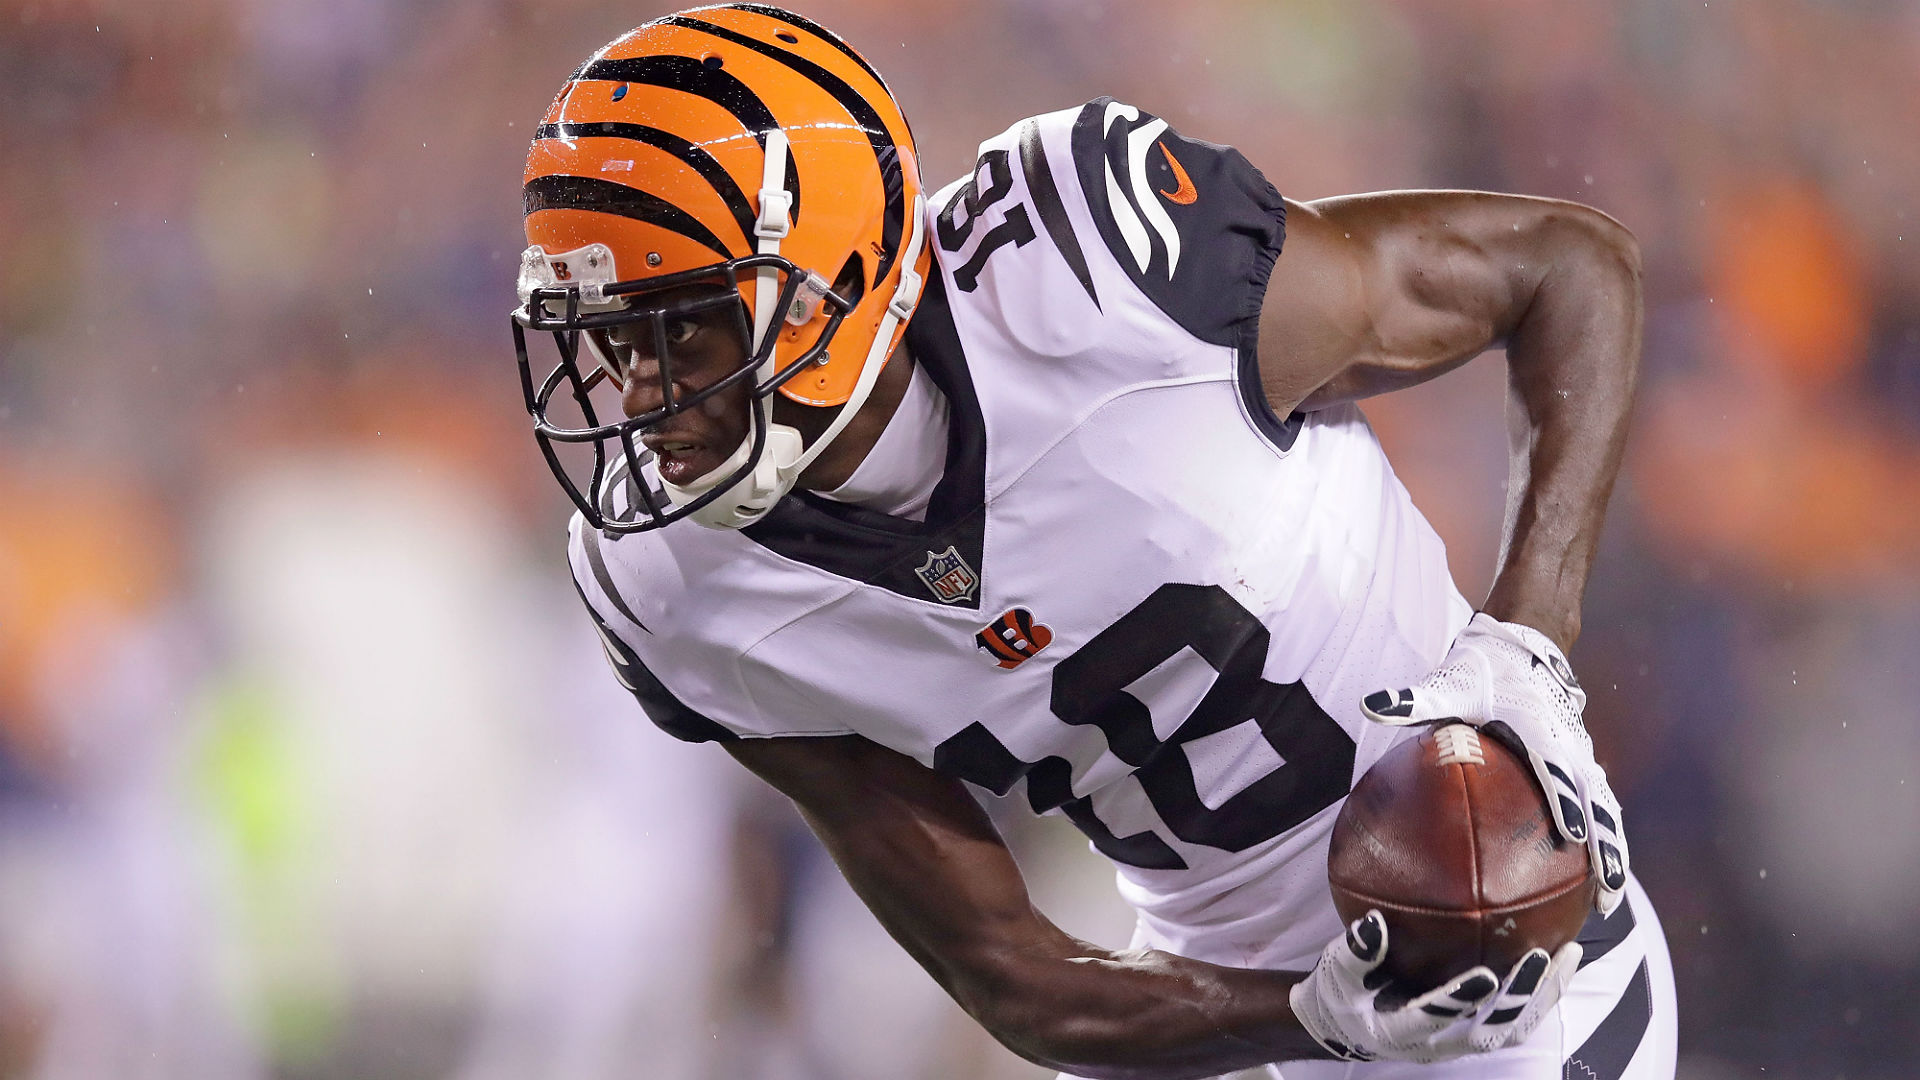 Injury Update For Cincinnati Bengals WR AJ Green